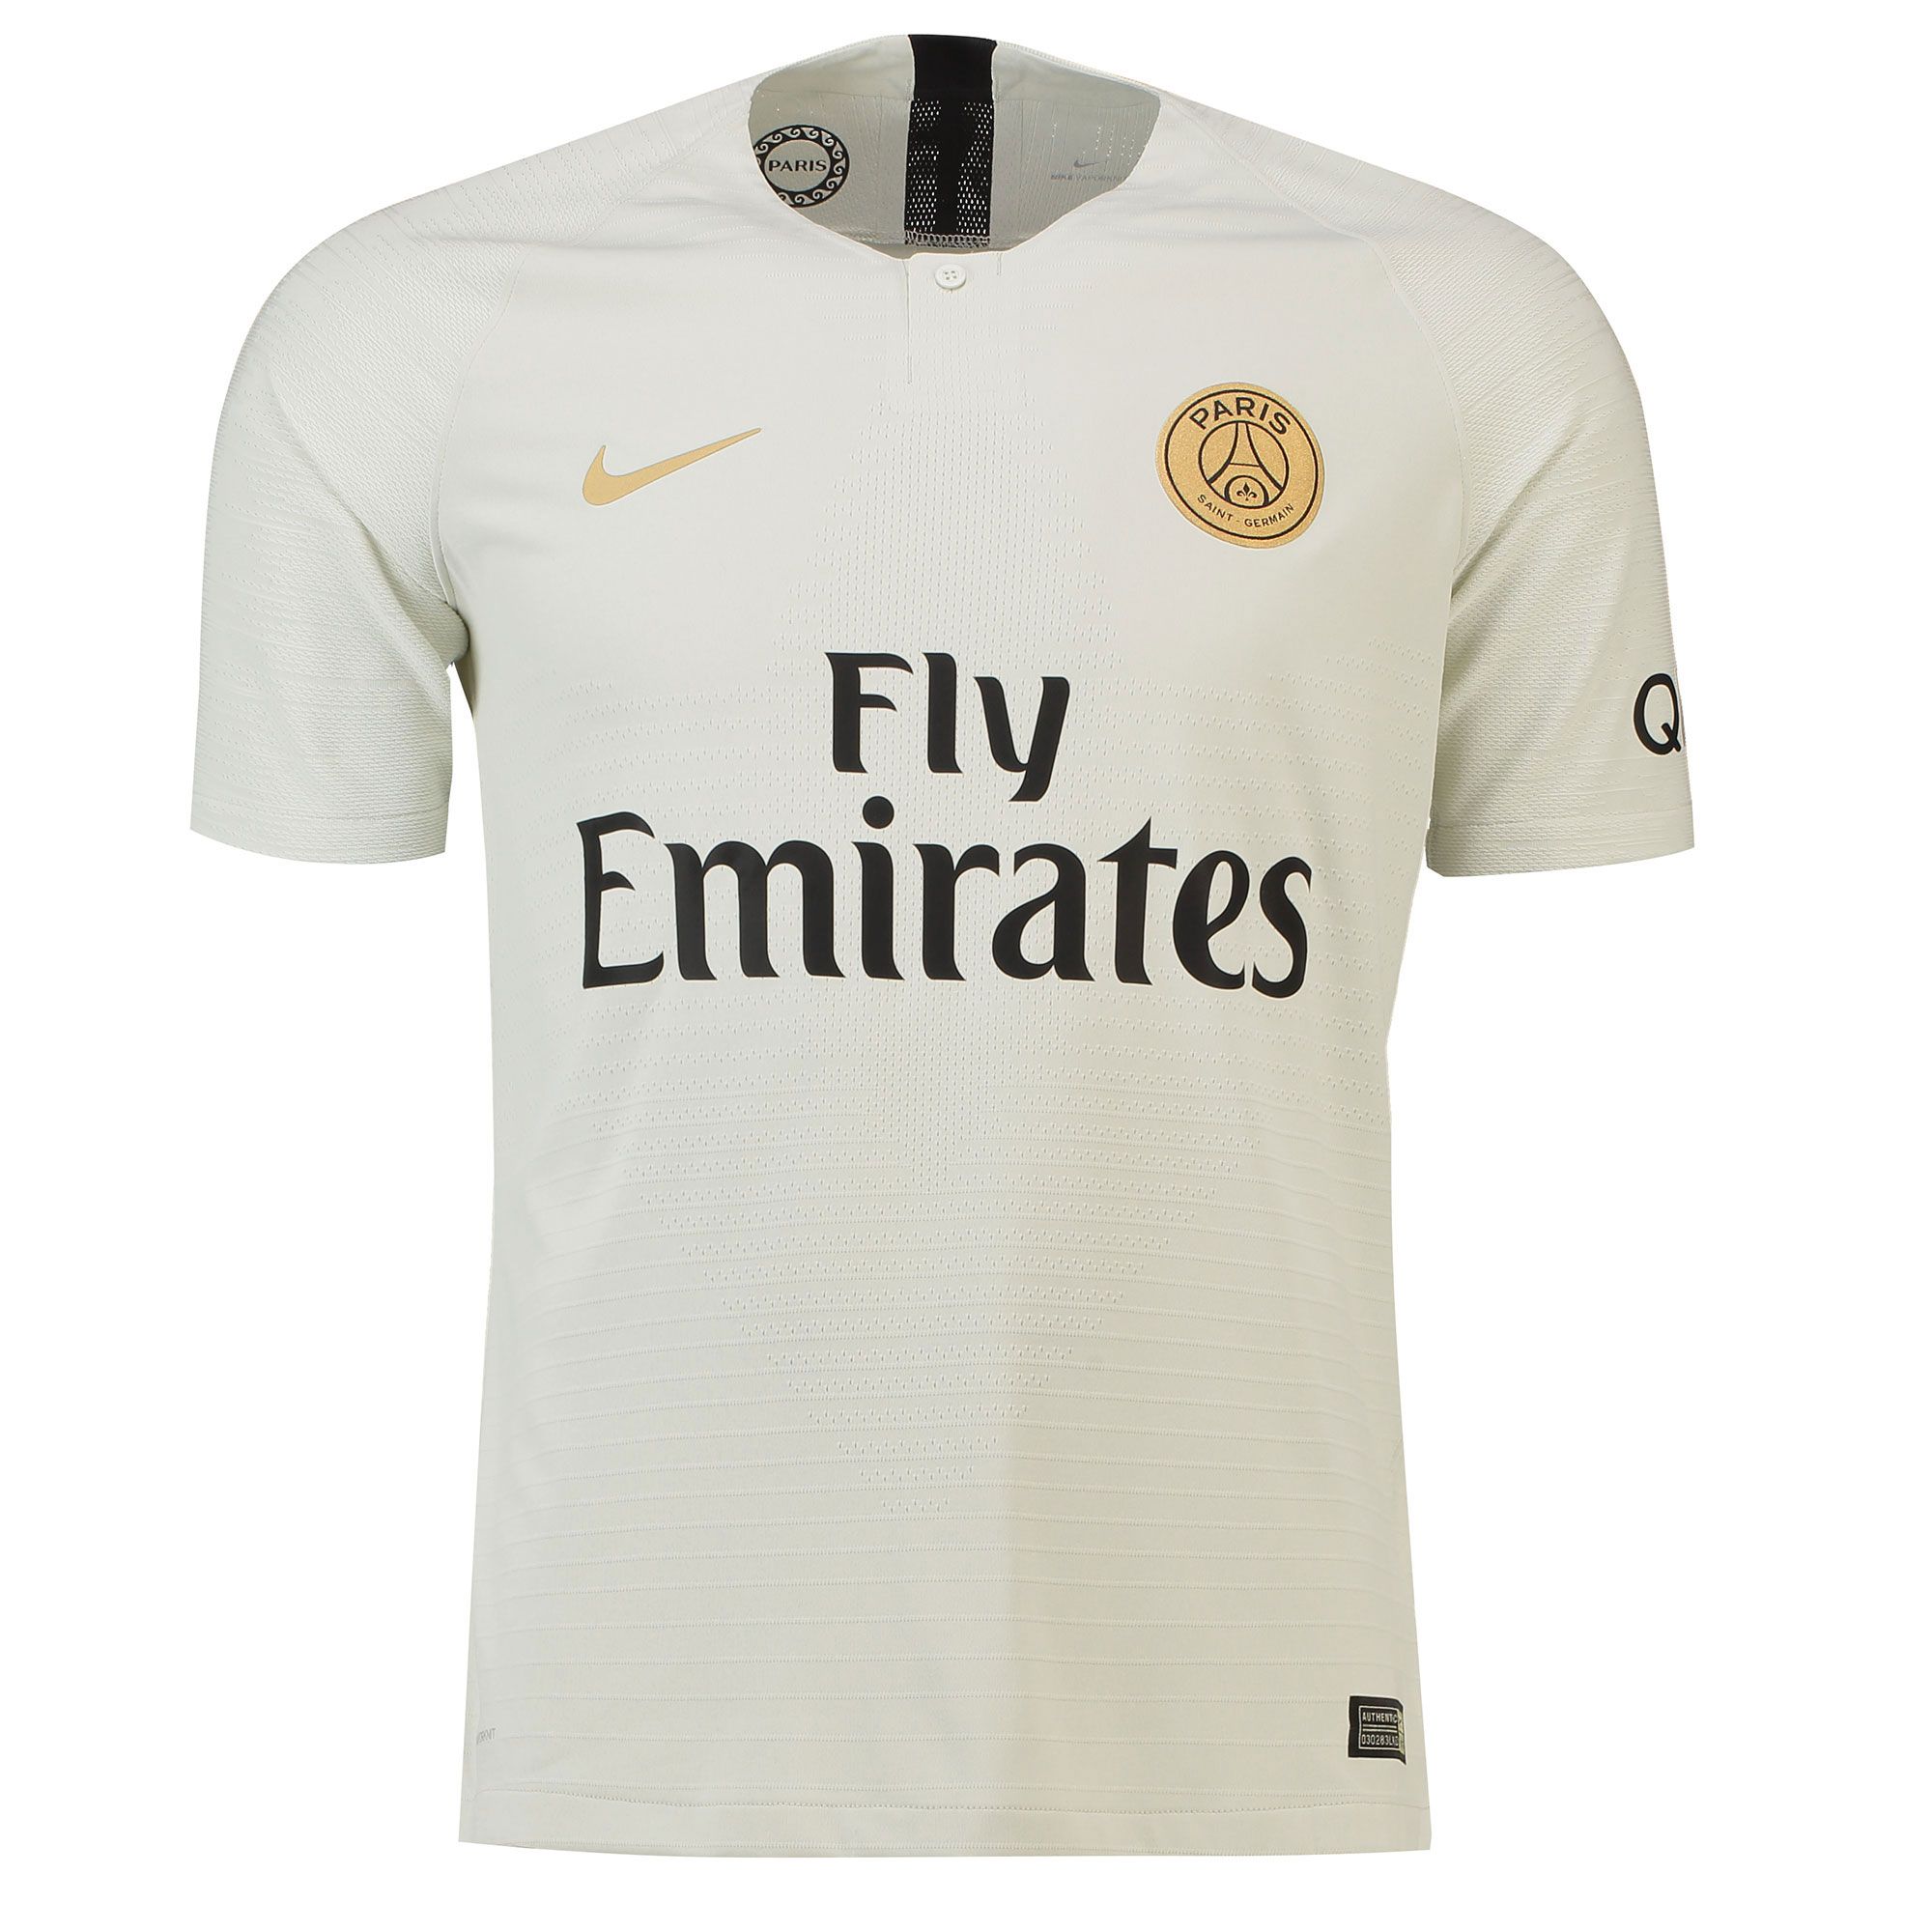 887af3198 Click to enlarge image paris saint germain 18 19 nike away kit a.jpg ...